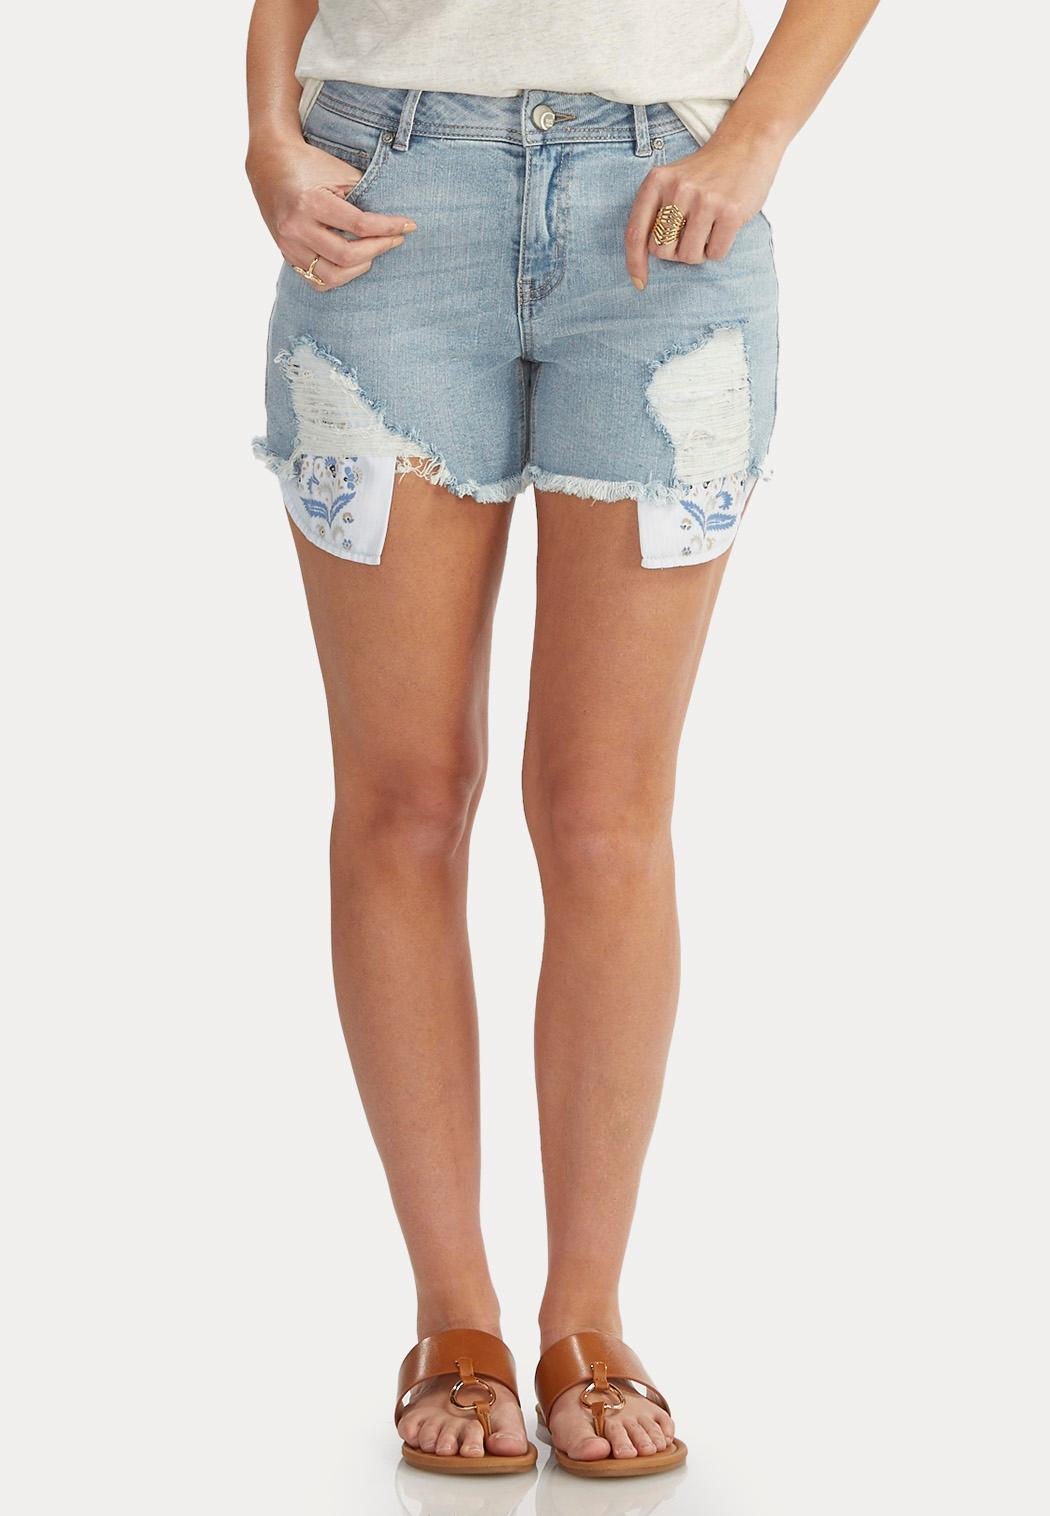 Floral Pocket Distressed Jean Shorts Shorts & Crops Cato Fashions